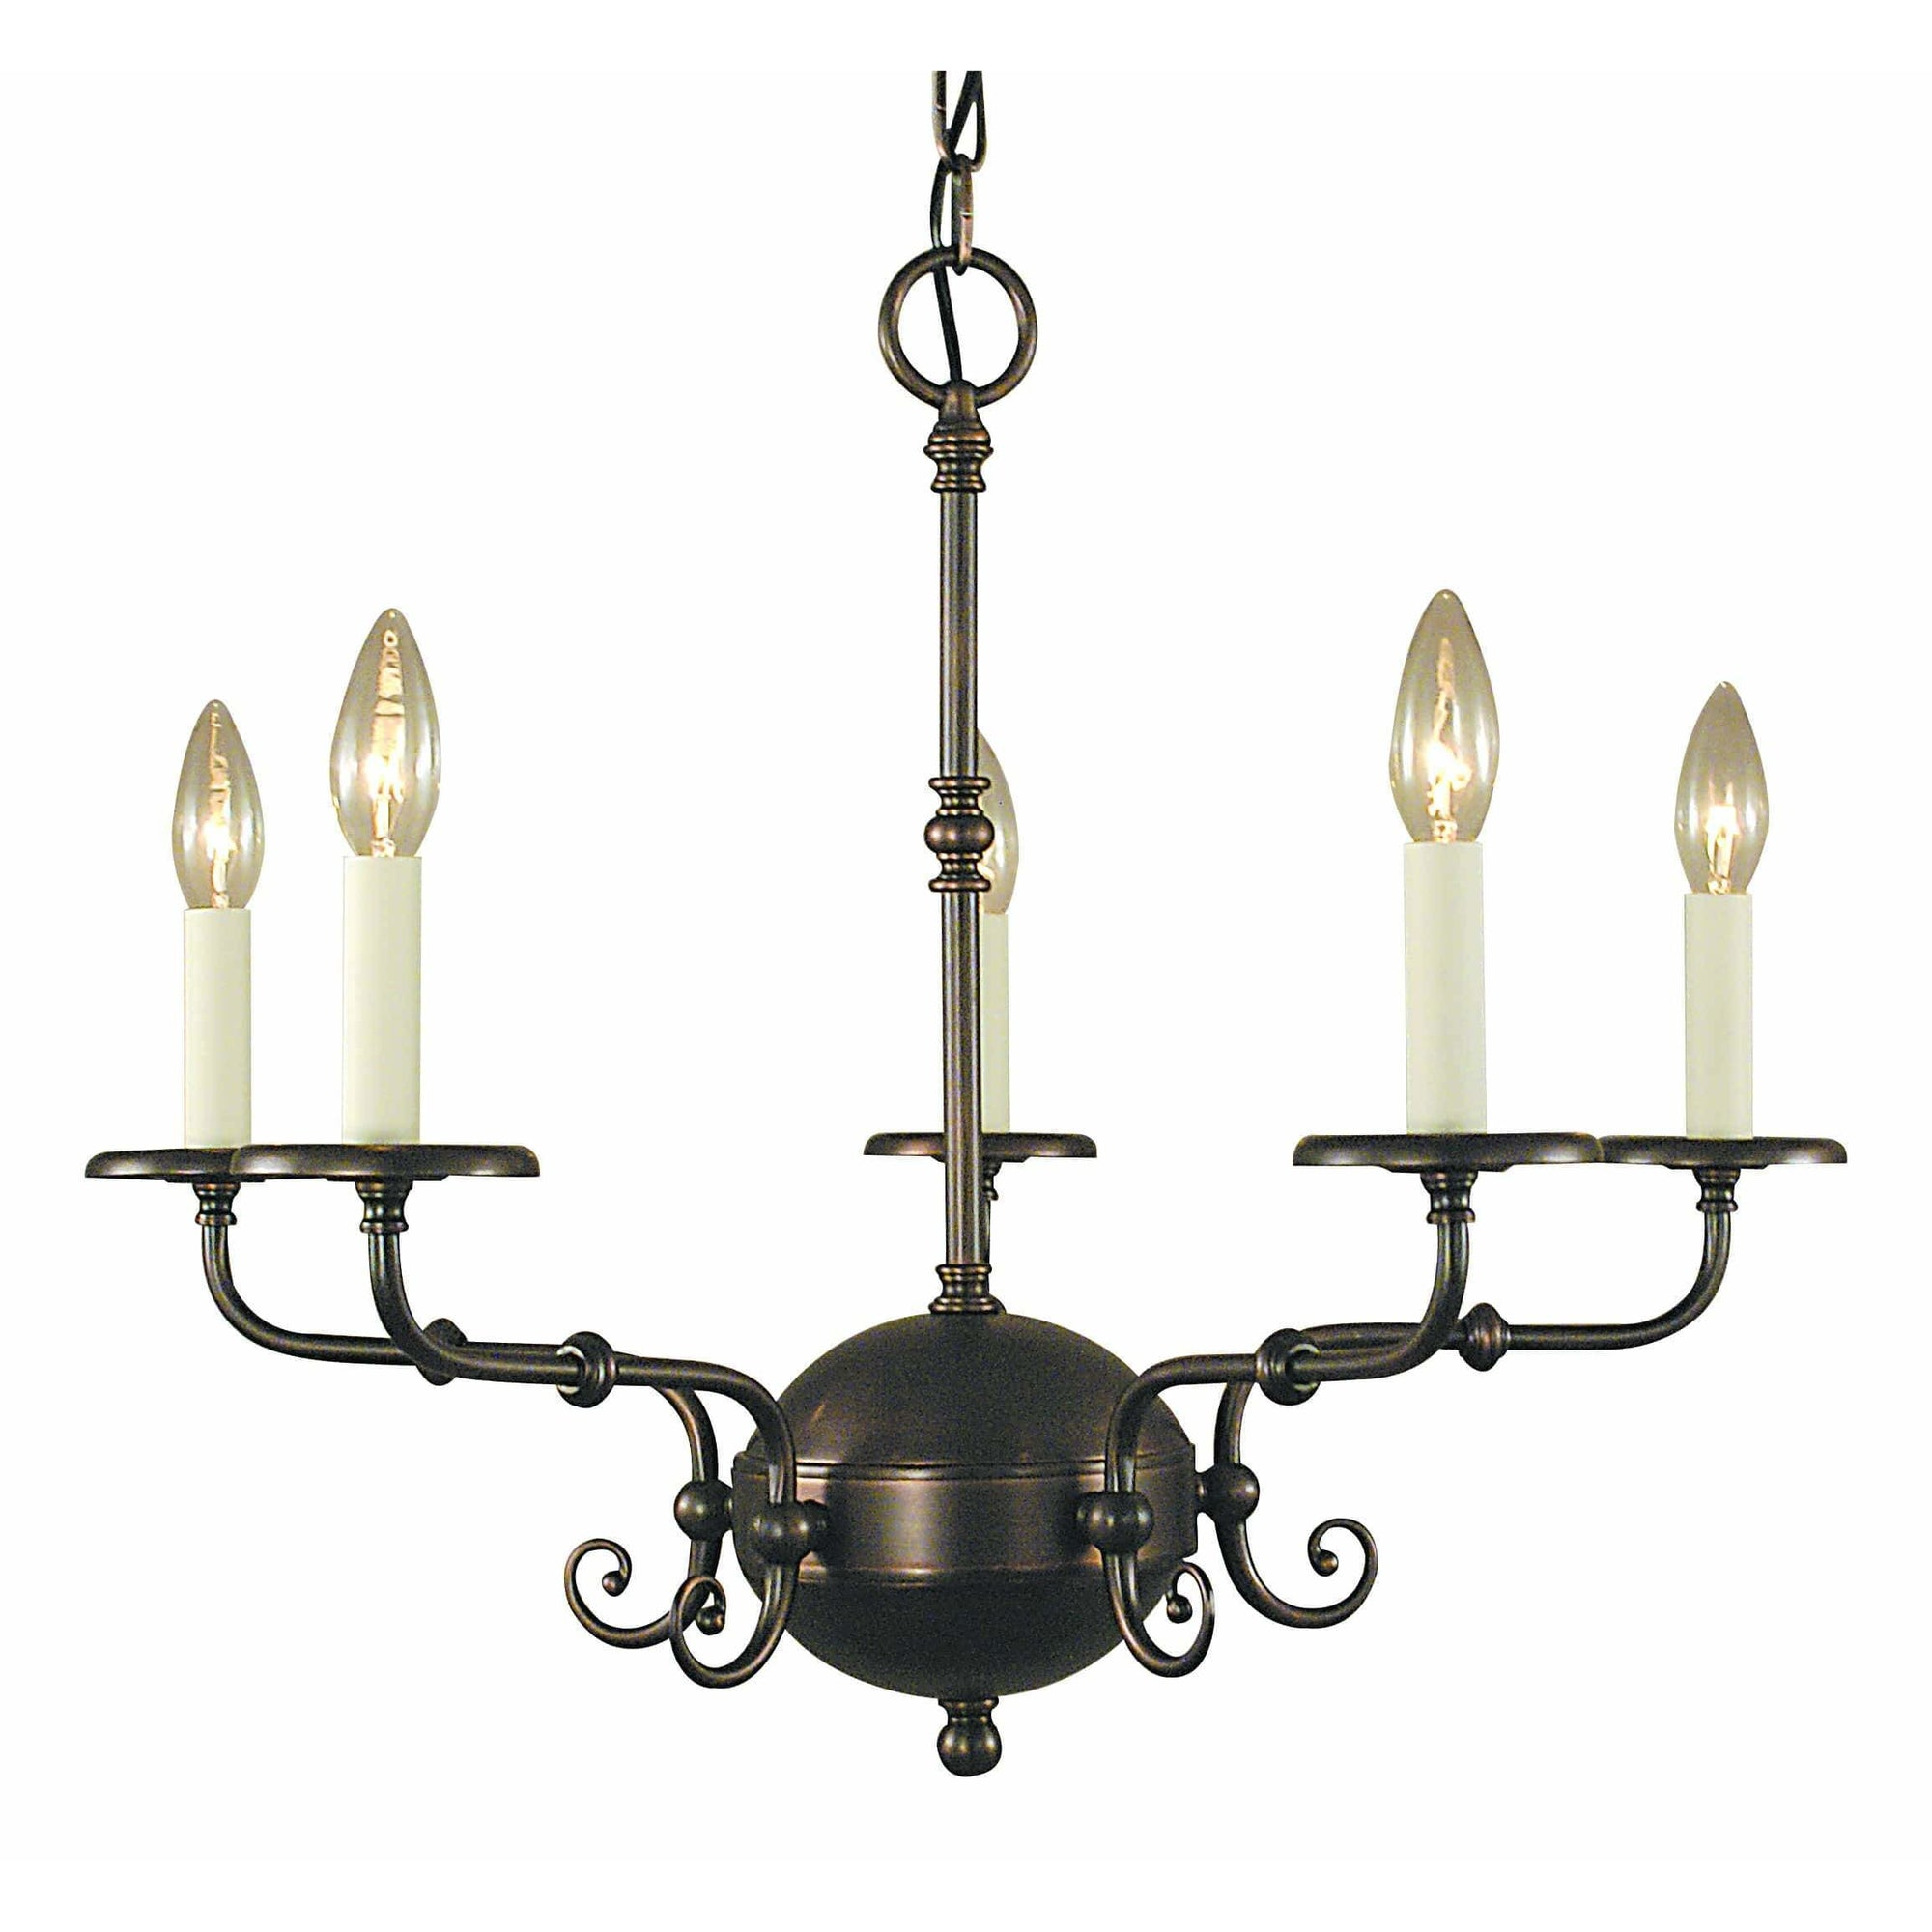 Framburg Chandeliers Siena Bronze 5-Light Siena Bronze Jamestown Dining Chandelier by Framburg 2375